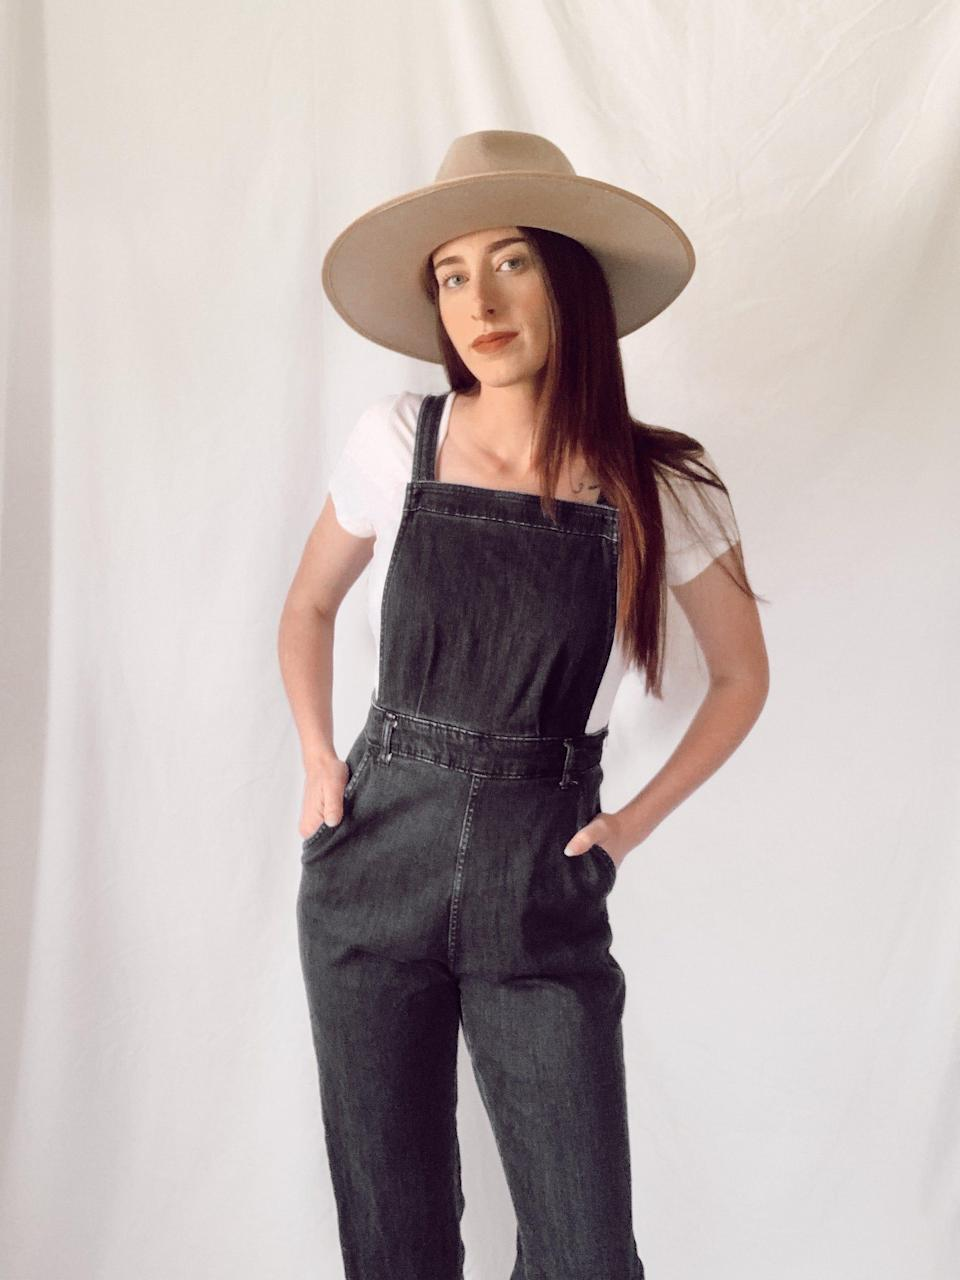 Celeste Preston models an outfit she sold from her thrift and consignment store in an effort to be more sustainable.